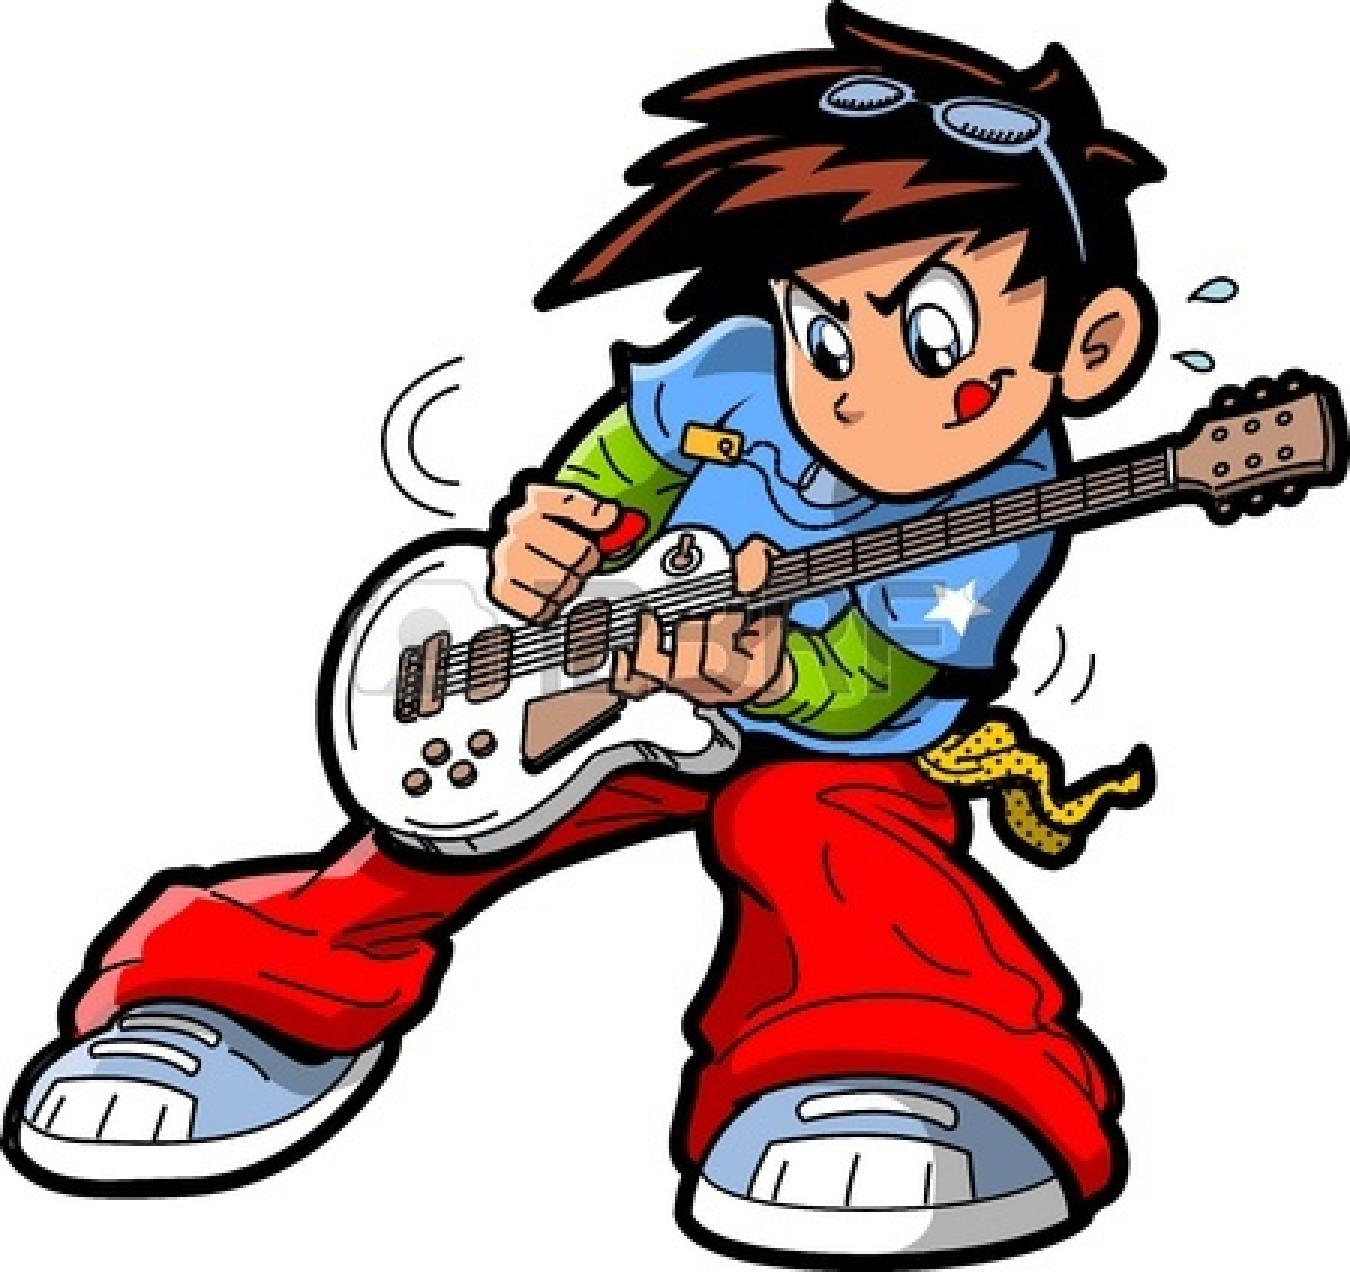 80 s rock band clipart clipart library 80s Clipart | Free download best 80s Clipart on ClipArtMag.com clipart library